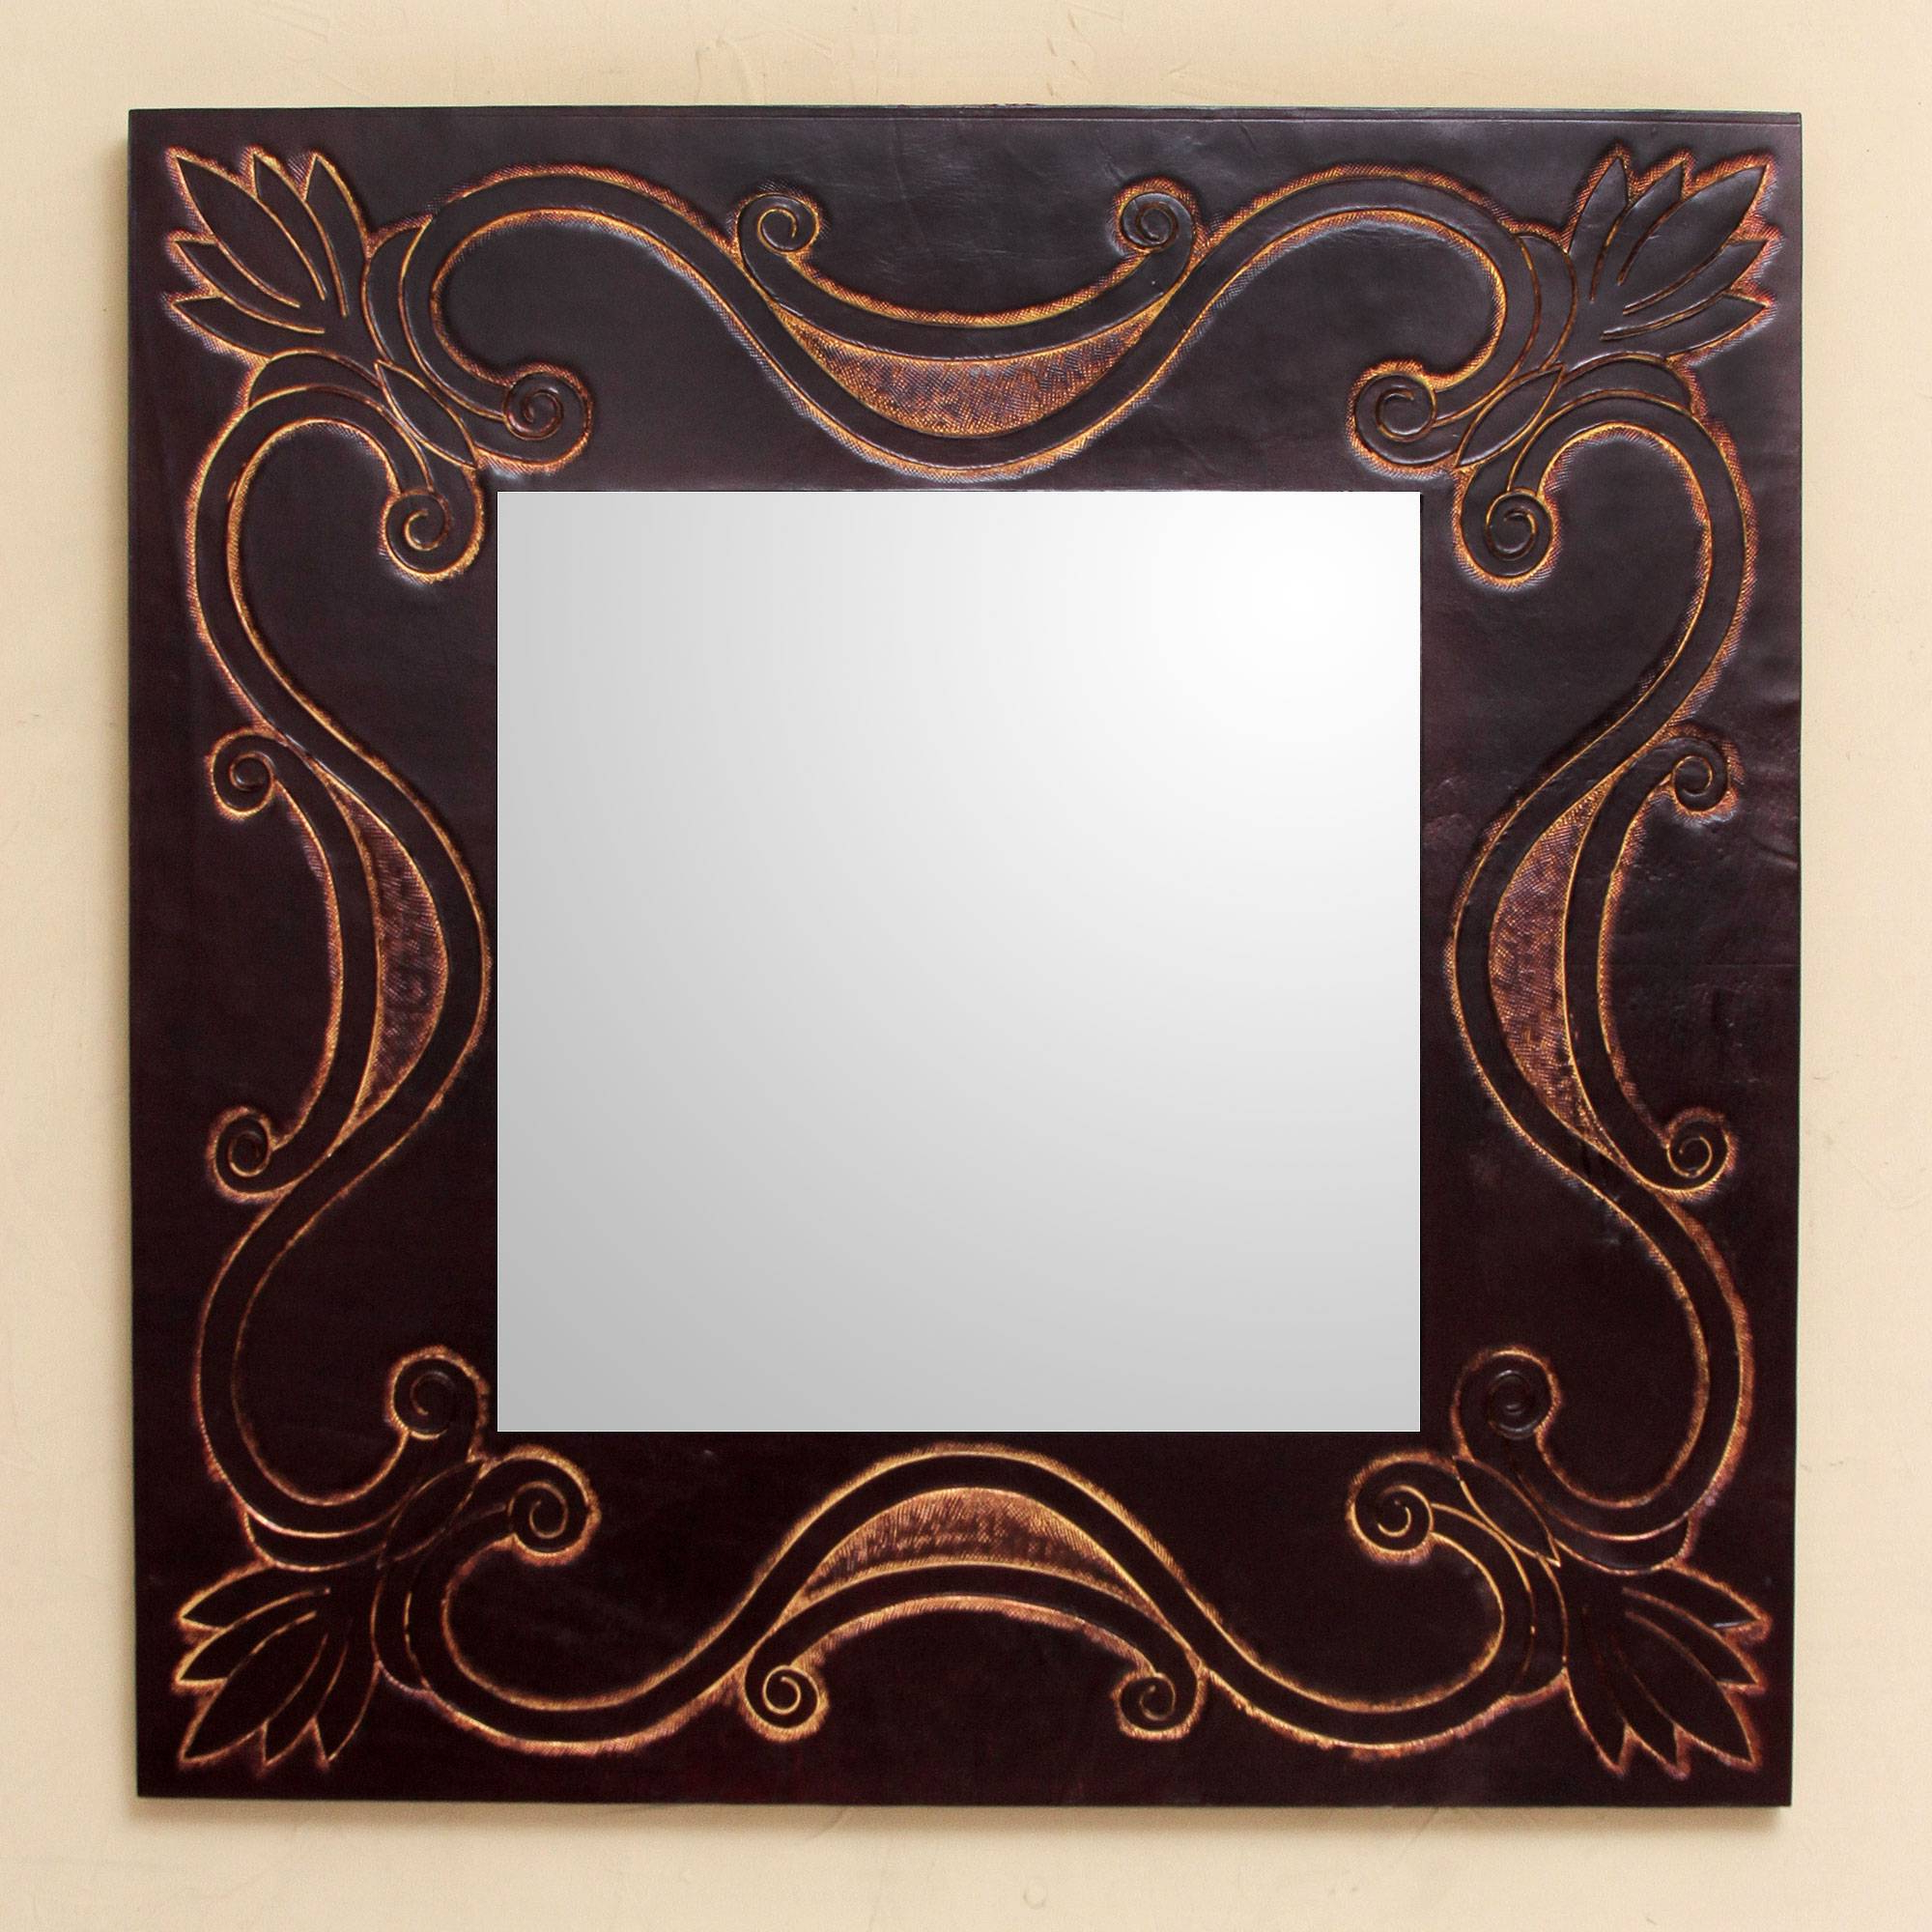 2019 Handcrafted Contemporary Wall Mirror With Tooled Leather, 'lotus Tendrils' Regarding Leather Wall Mirrors (View 1 of 20)